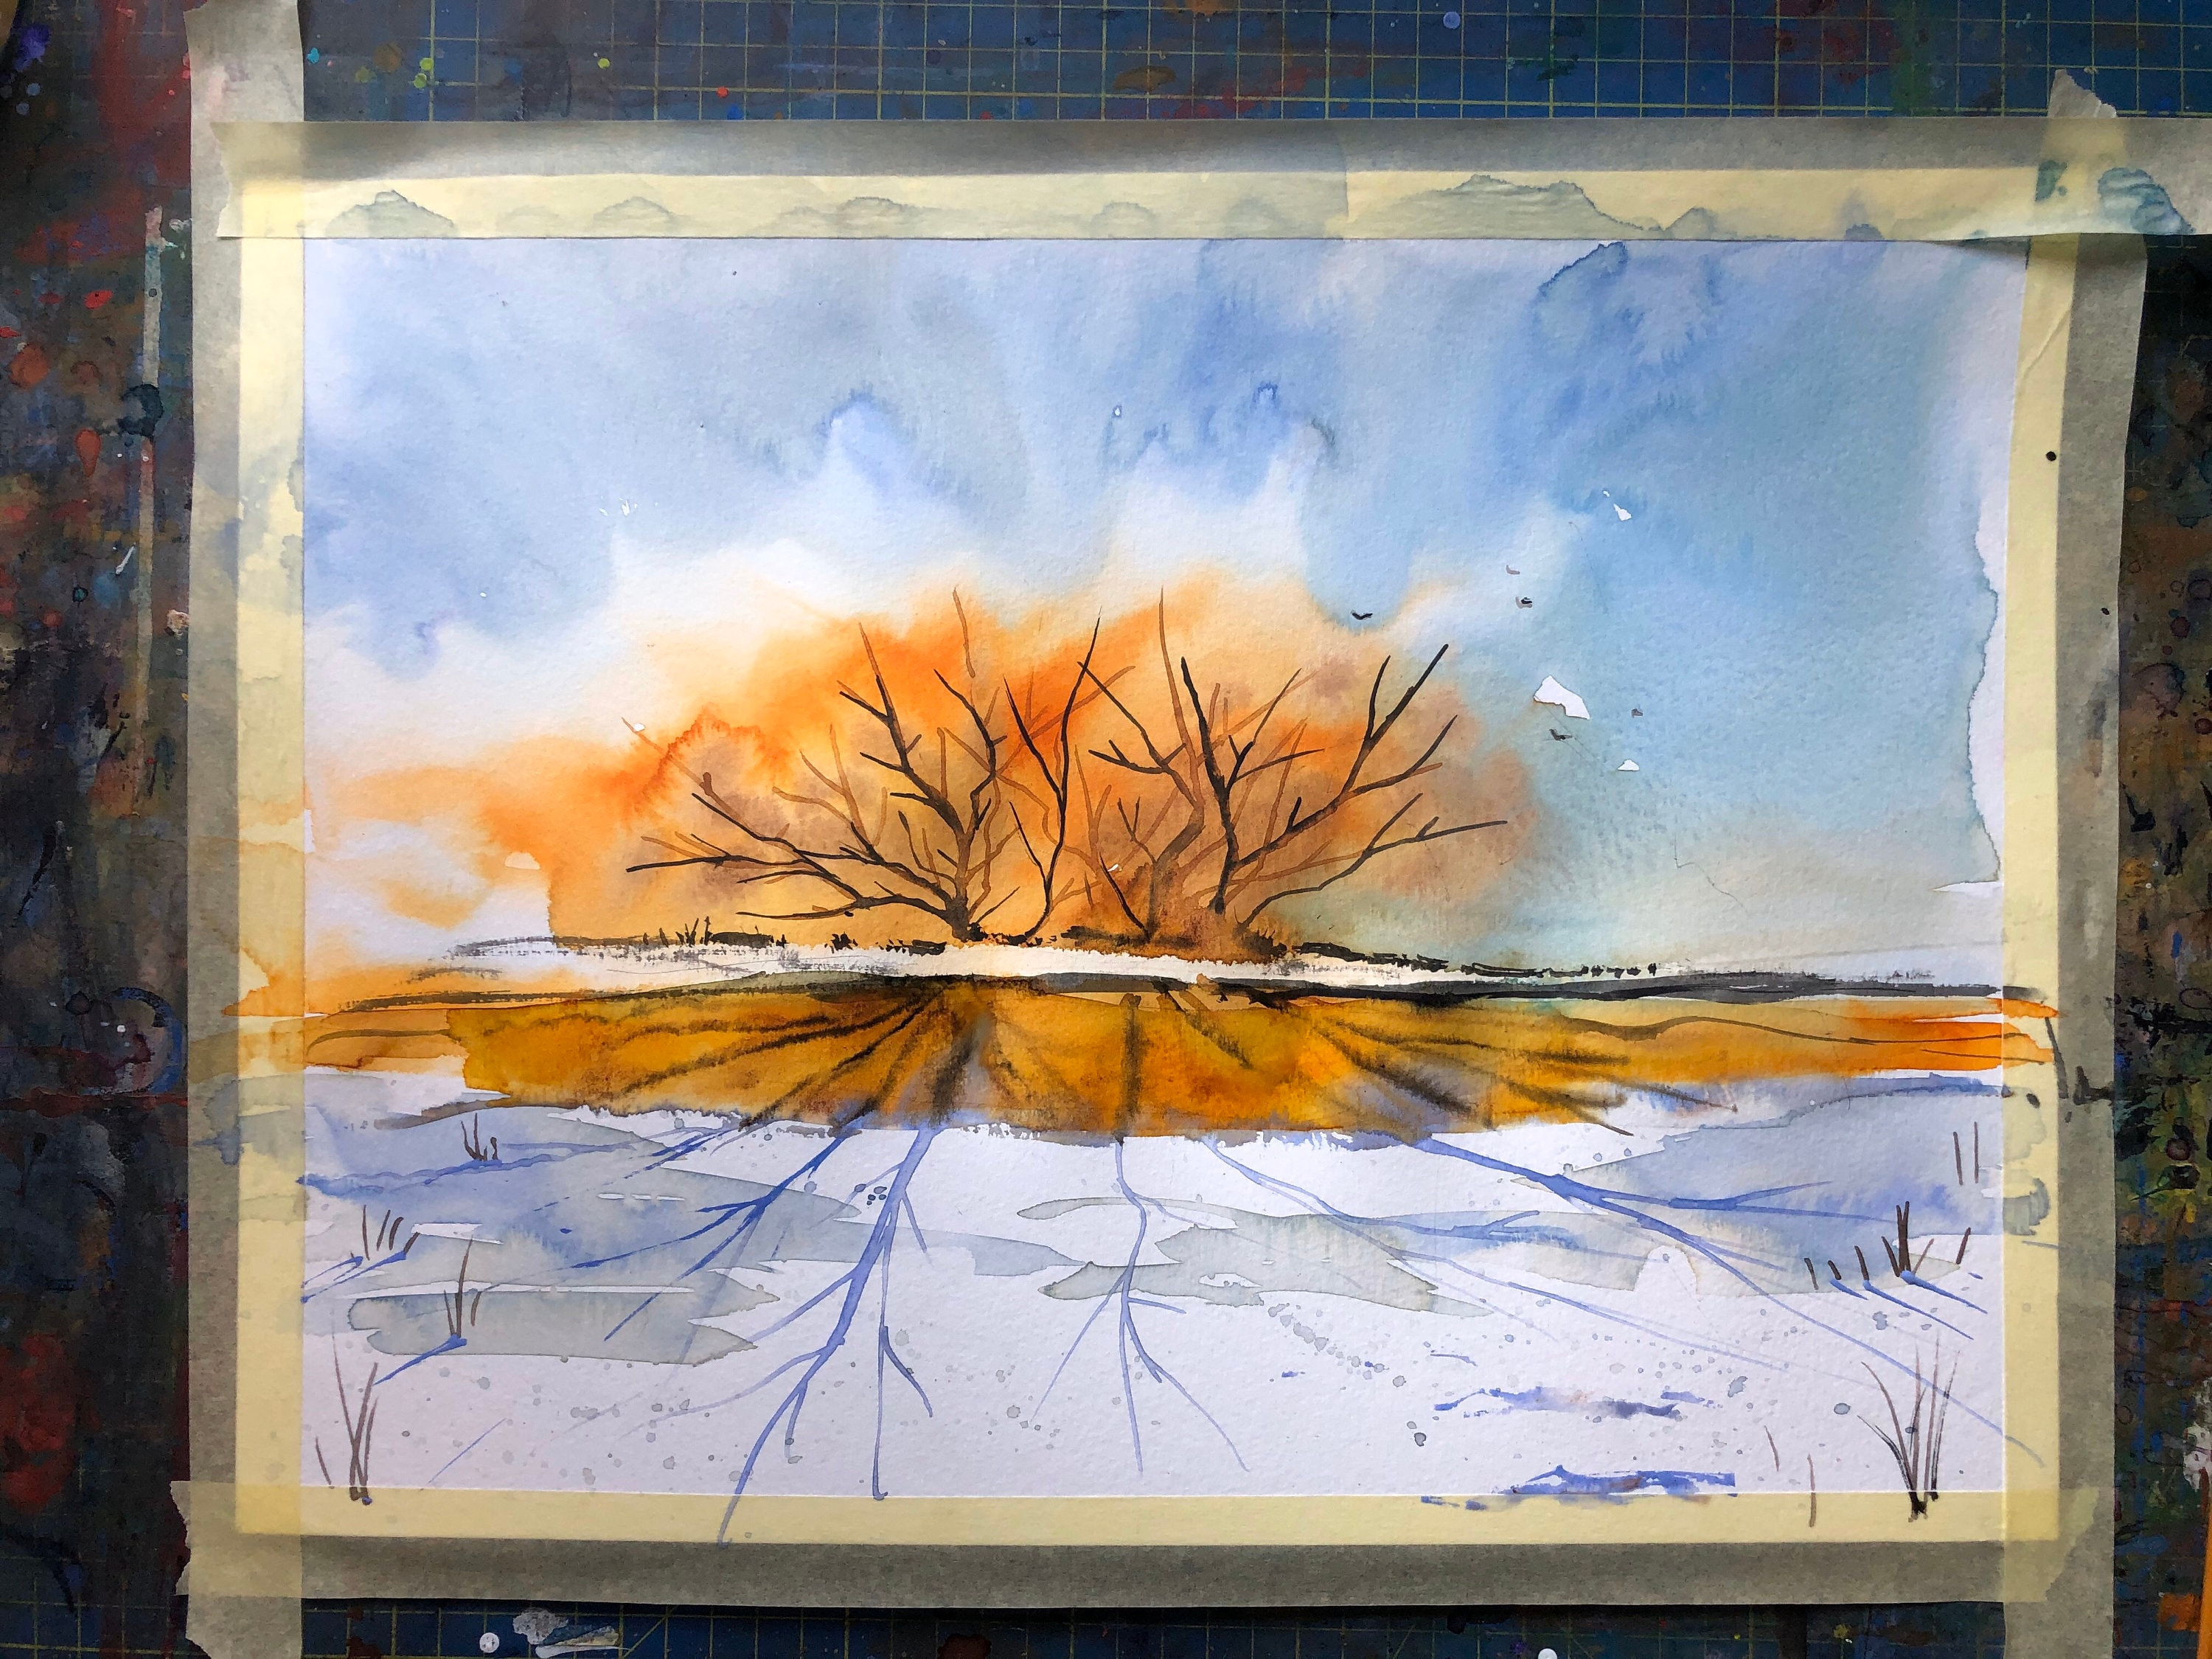 Winter Sunset Watercolor Original Painting Rustic Home Decor Wall Hanging Bob Ross Style Landscape Paintings Decor Gift For Her